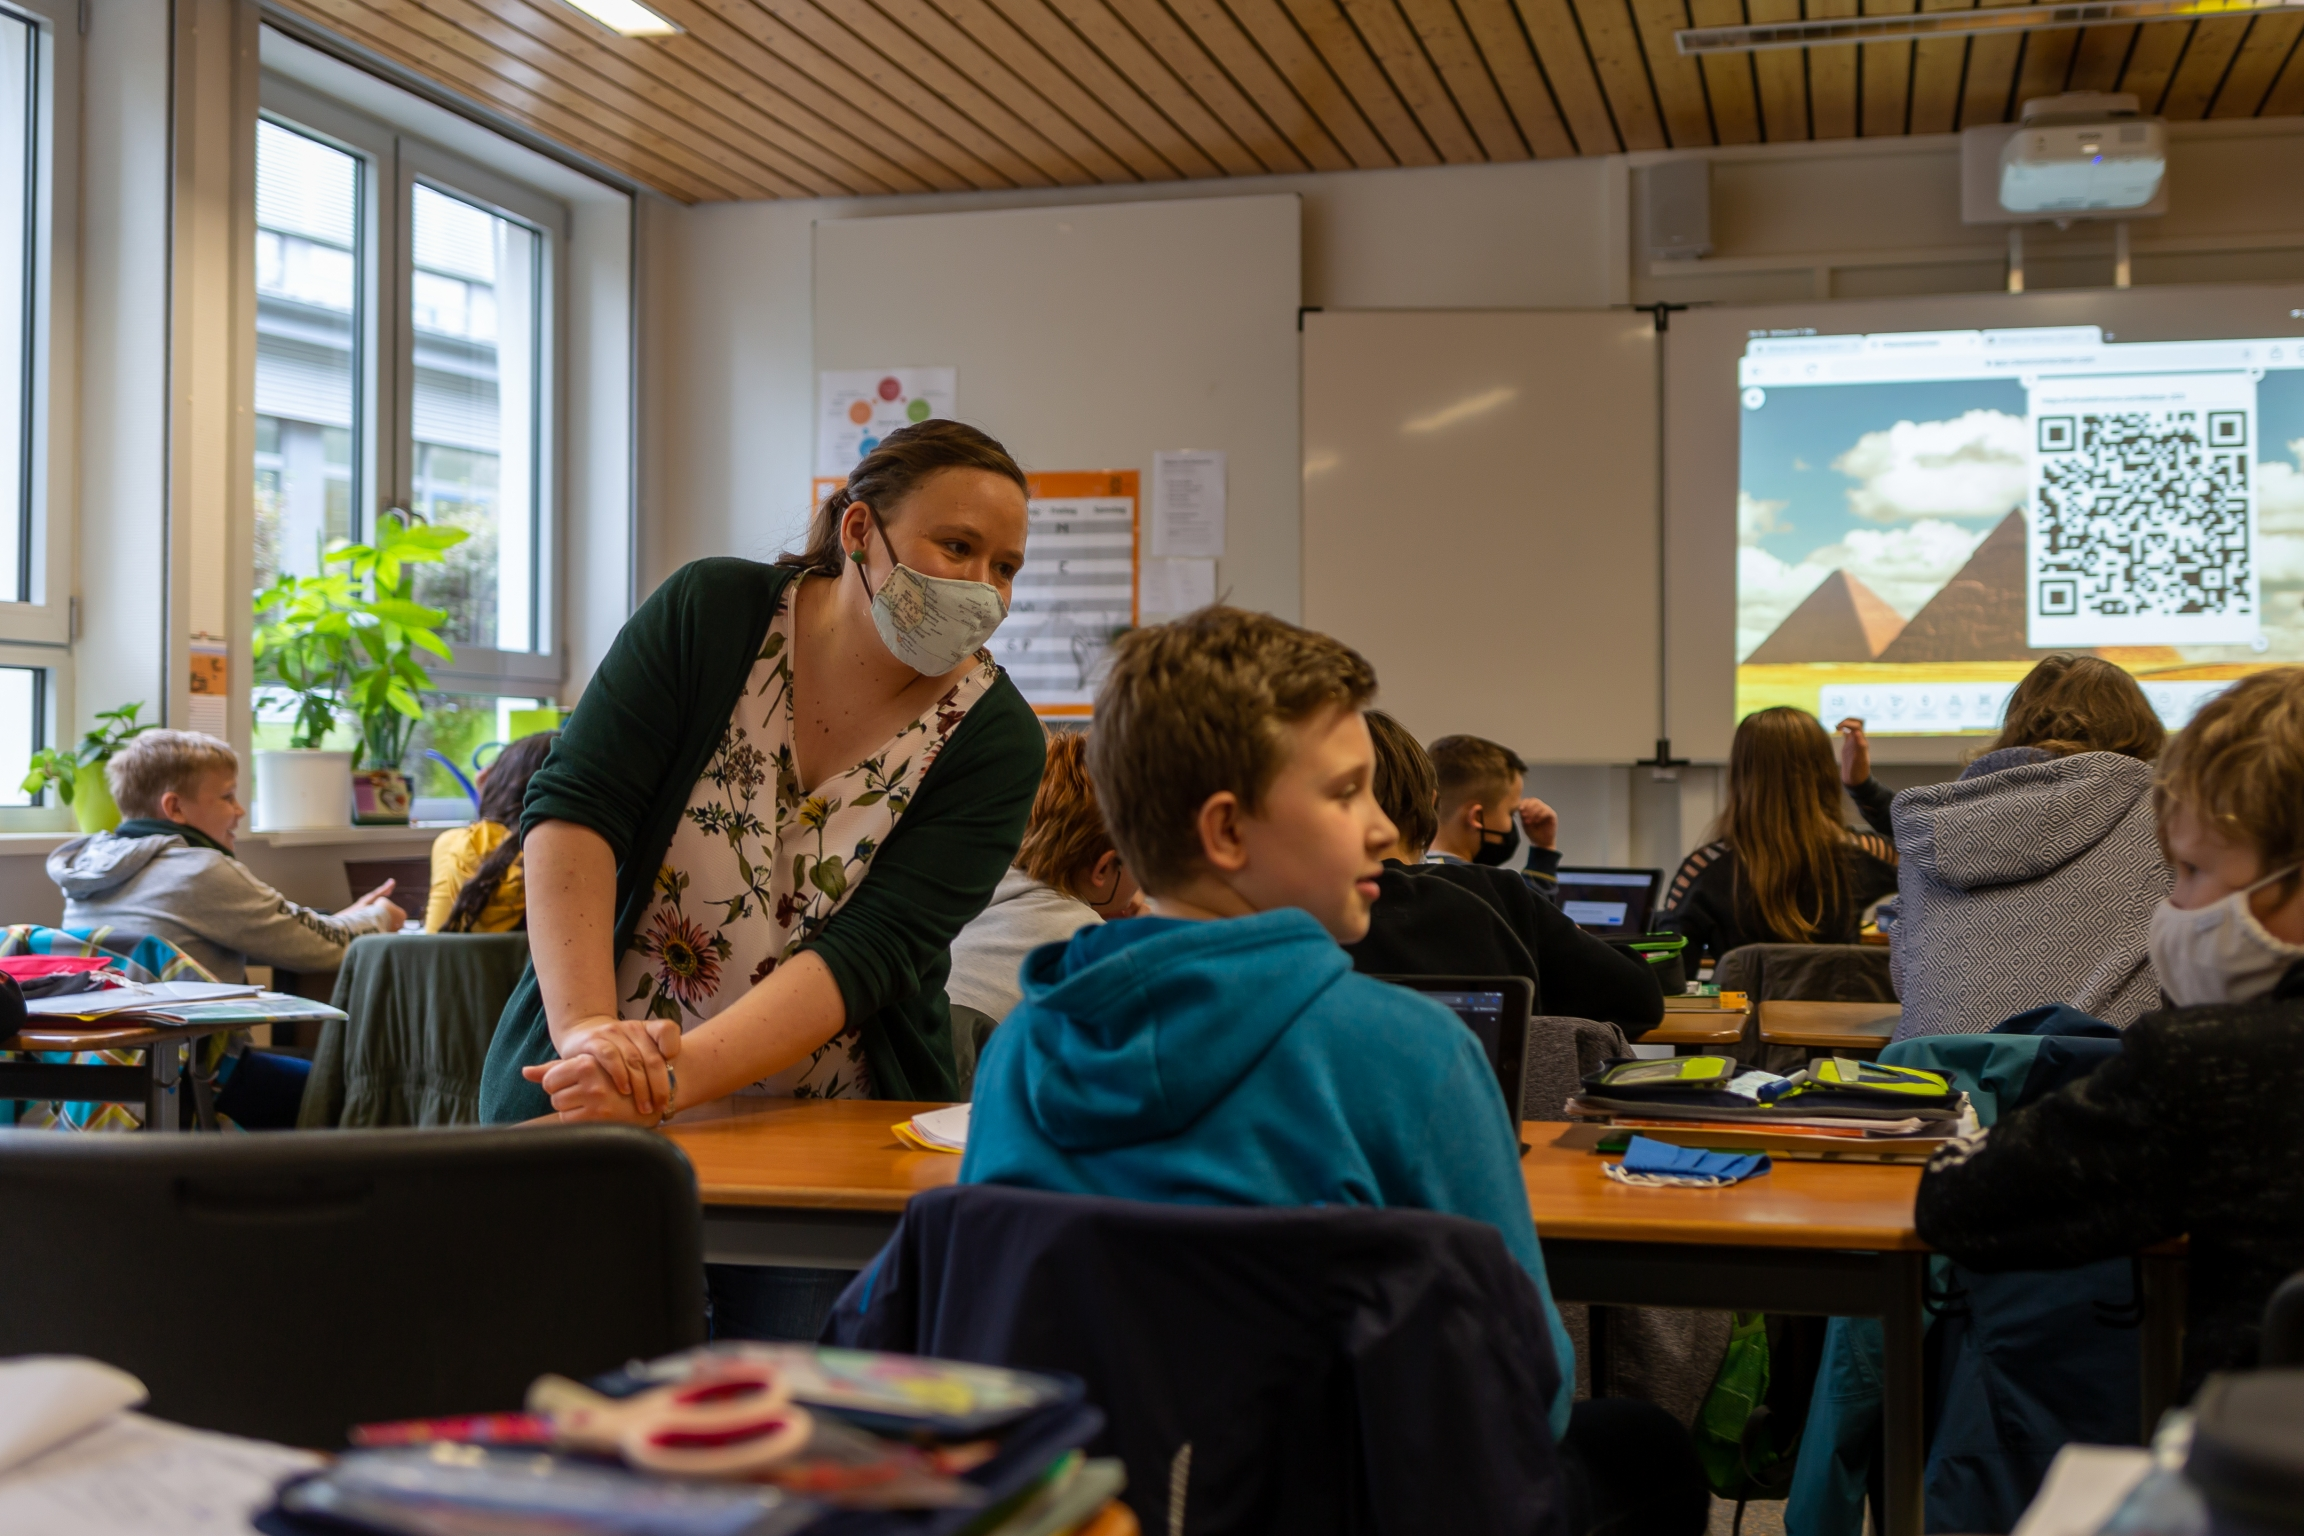 Teacher Inga Deppa works with students in an English class at Jacobishule in Kalletal, Germany. Masks were optional for students when they were seated at their desks but the regional health authority has since tighten mask rules for older students.